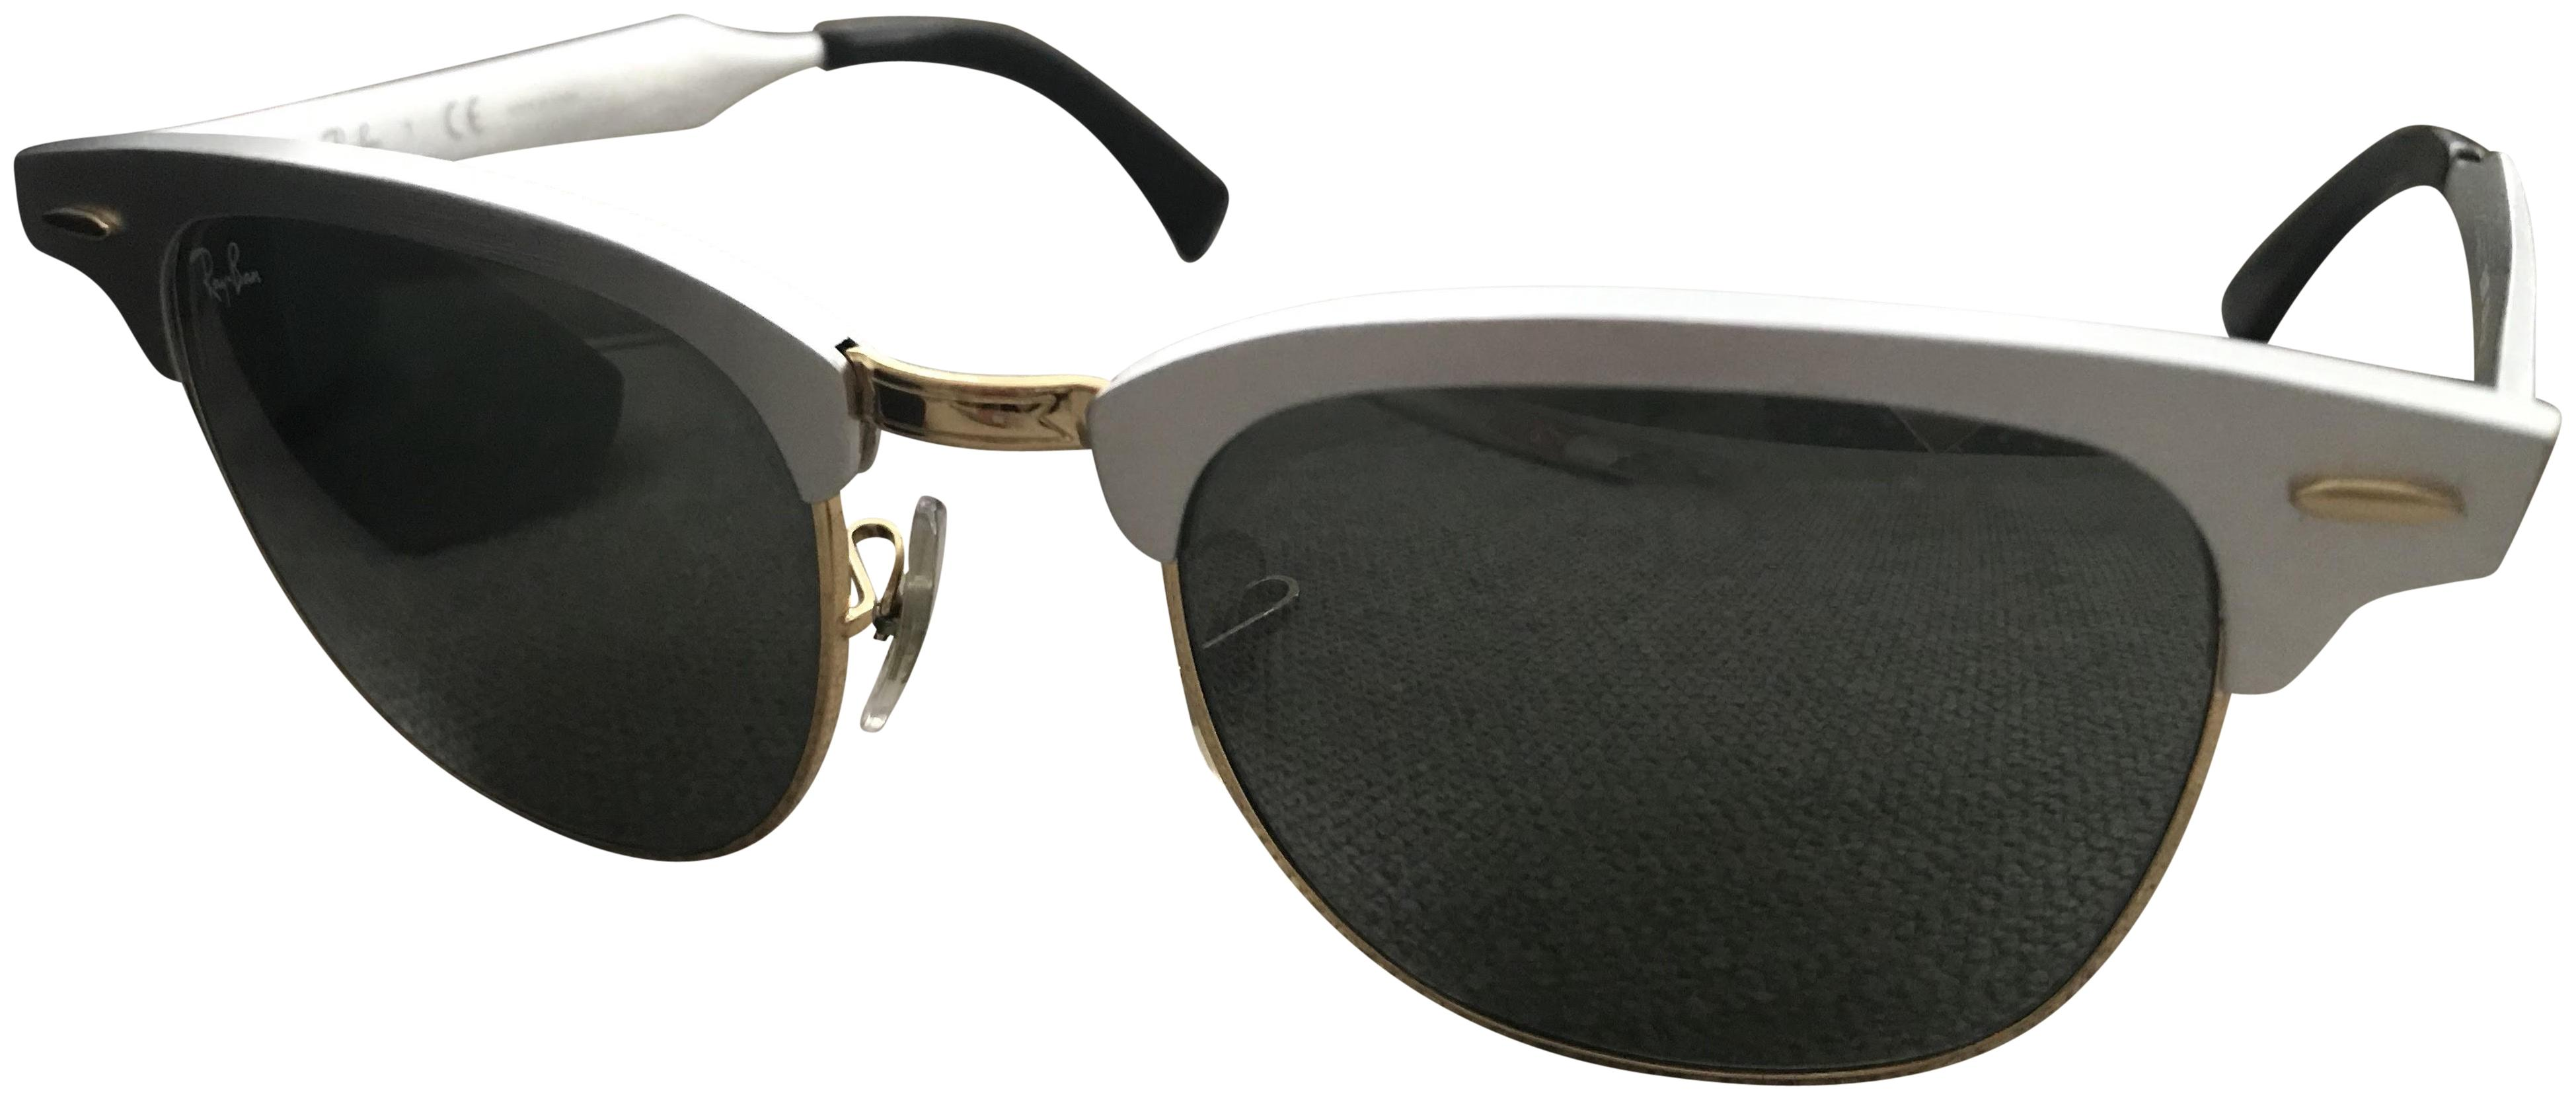 7b657a80ed939 ... netherlands ray ban ray ban non polarized clubmaster 0rb3507 137 40  bc43d 9d9b3